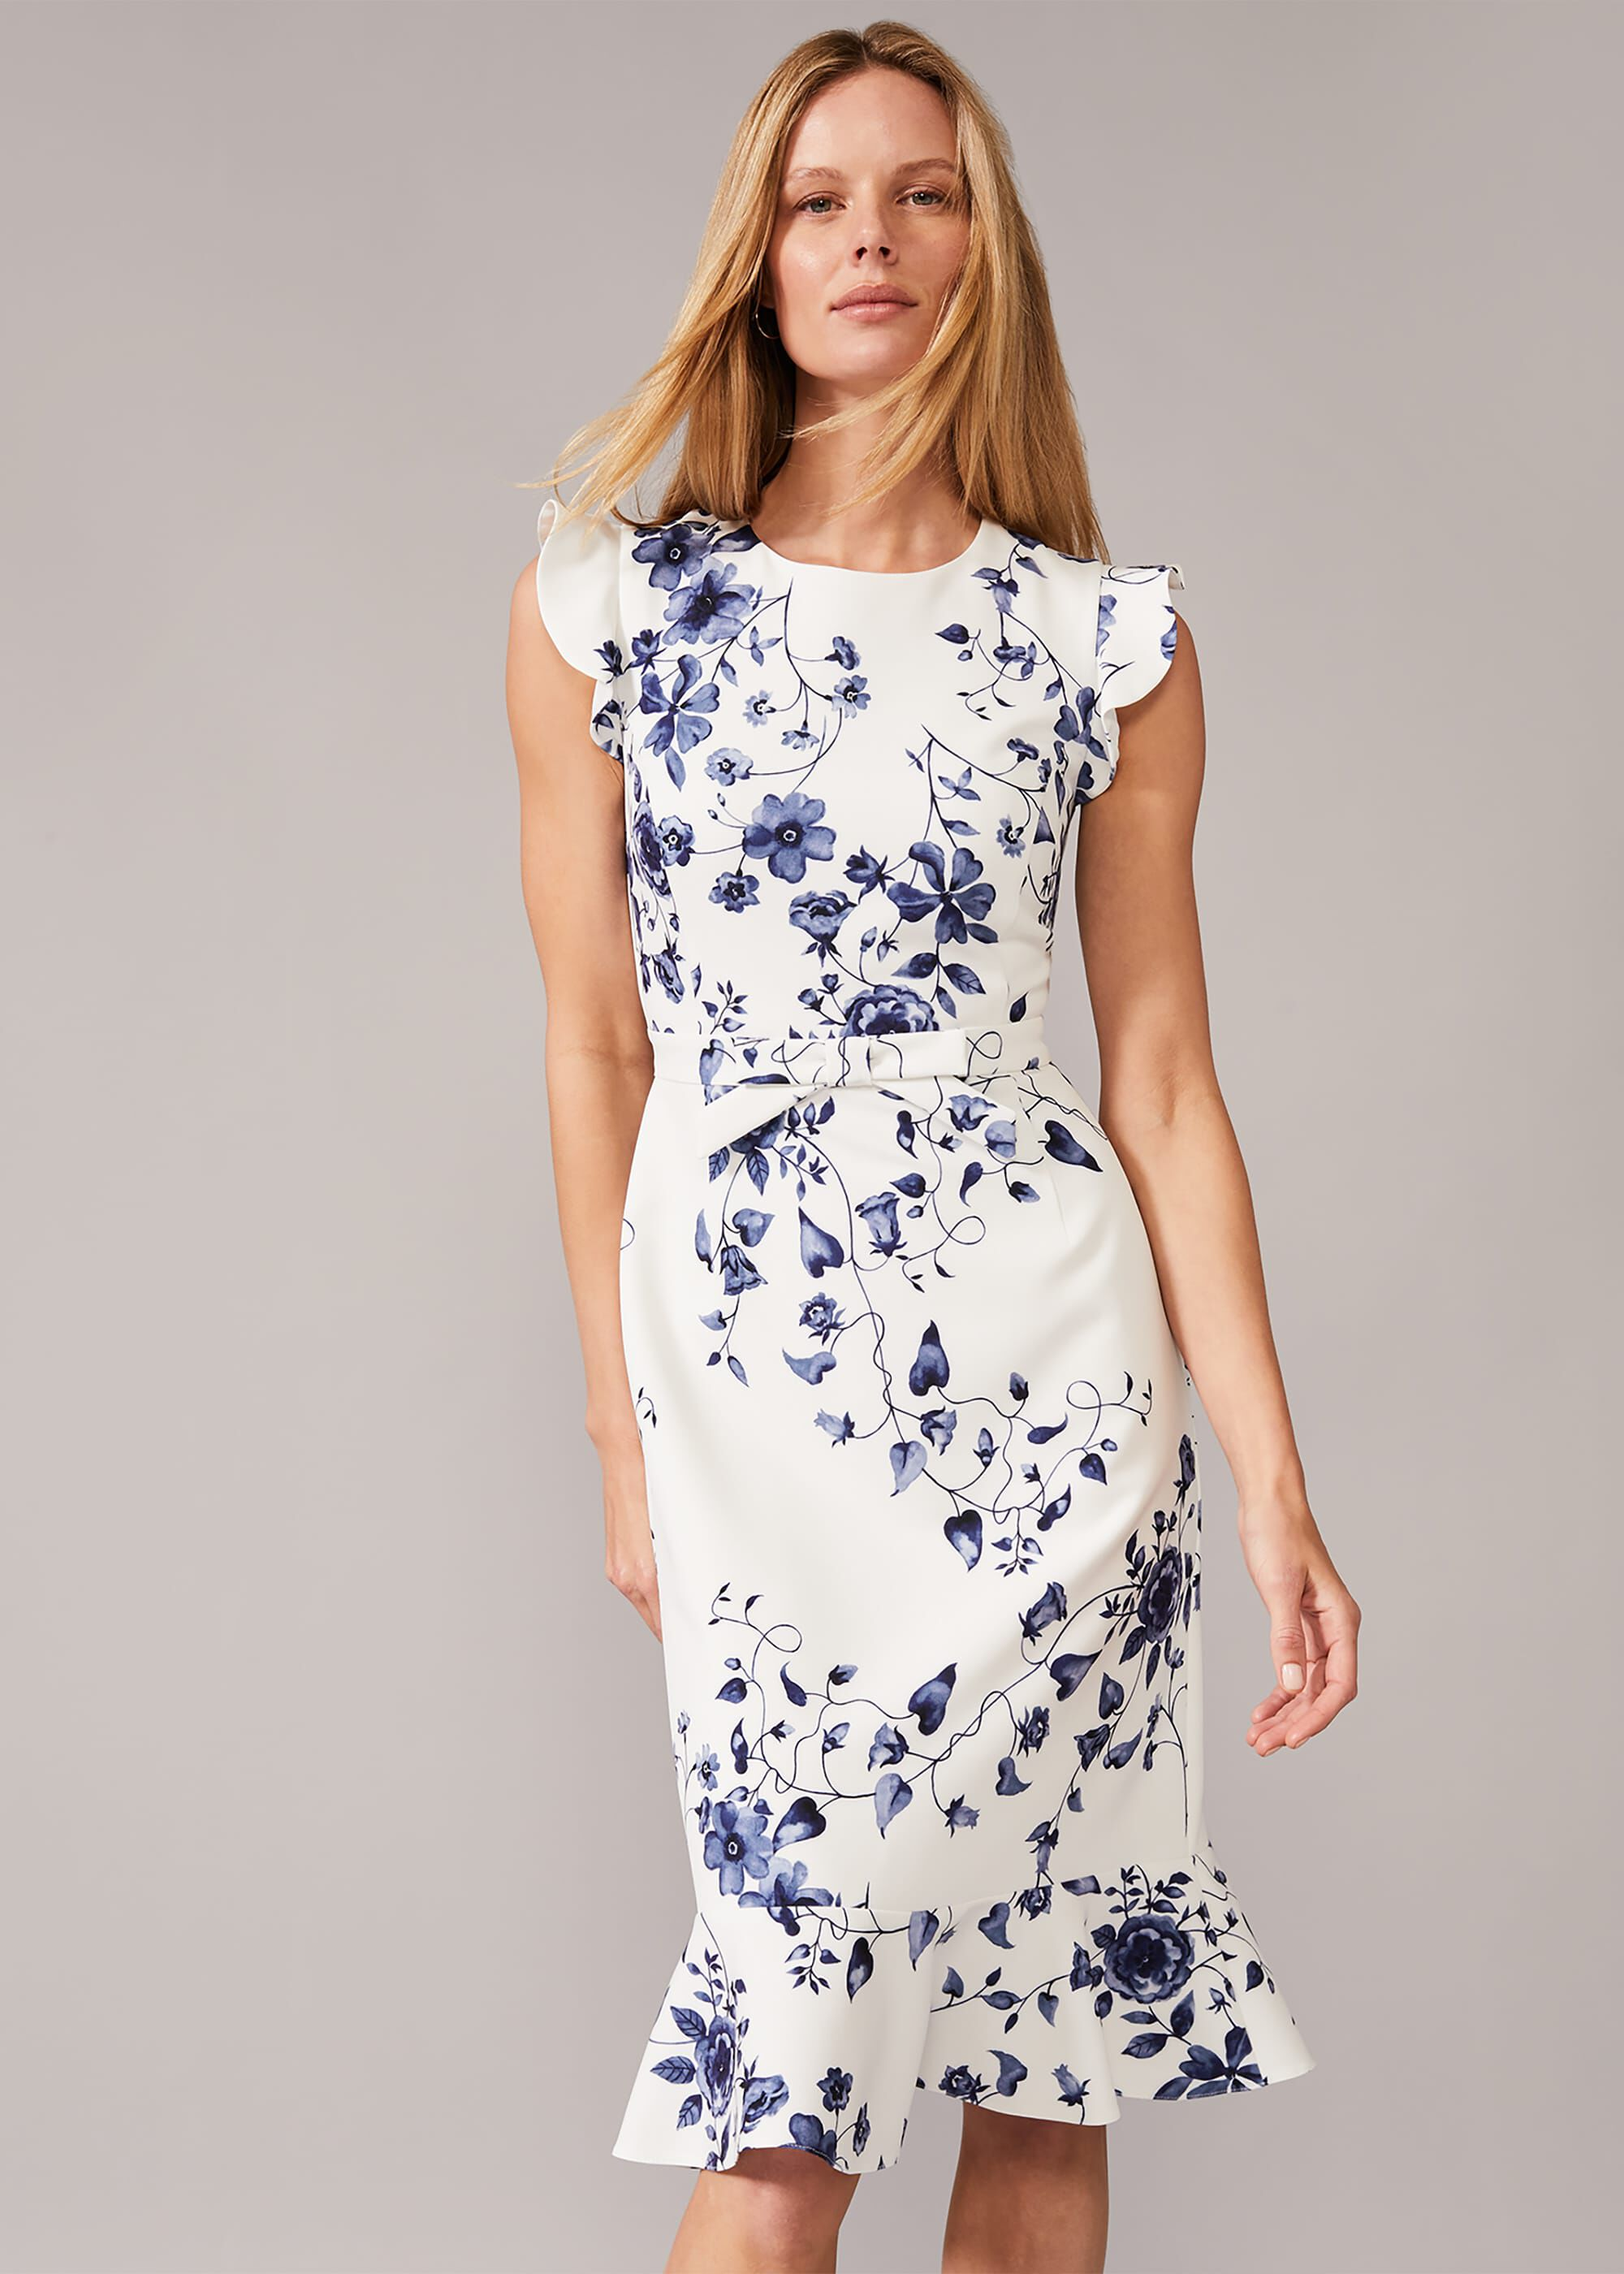 Phase Eight Tori Floral Dress, Cream, Fitted, Occasion Dress